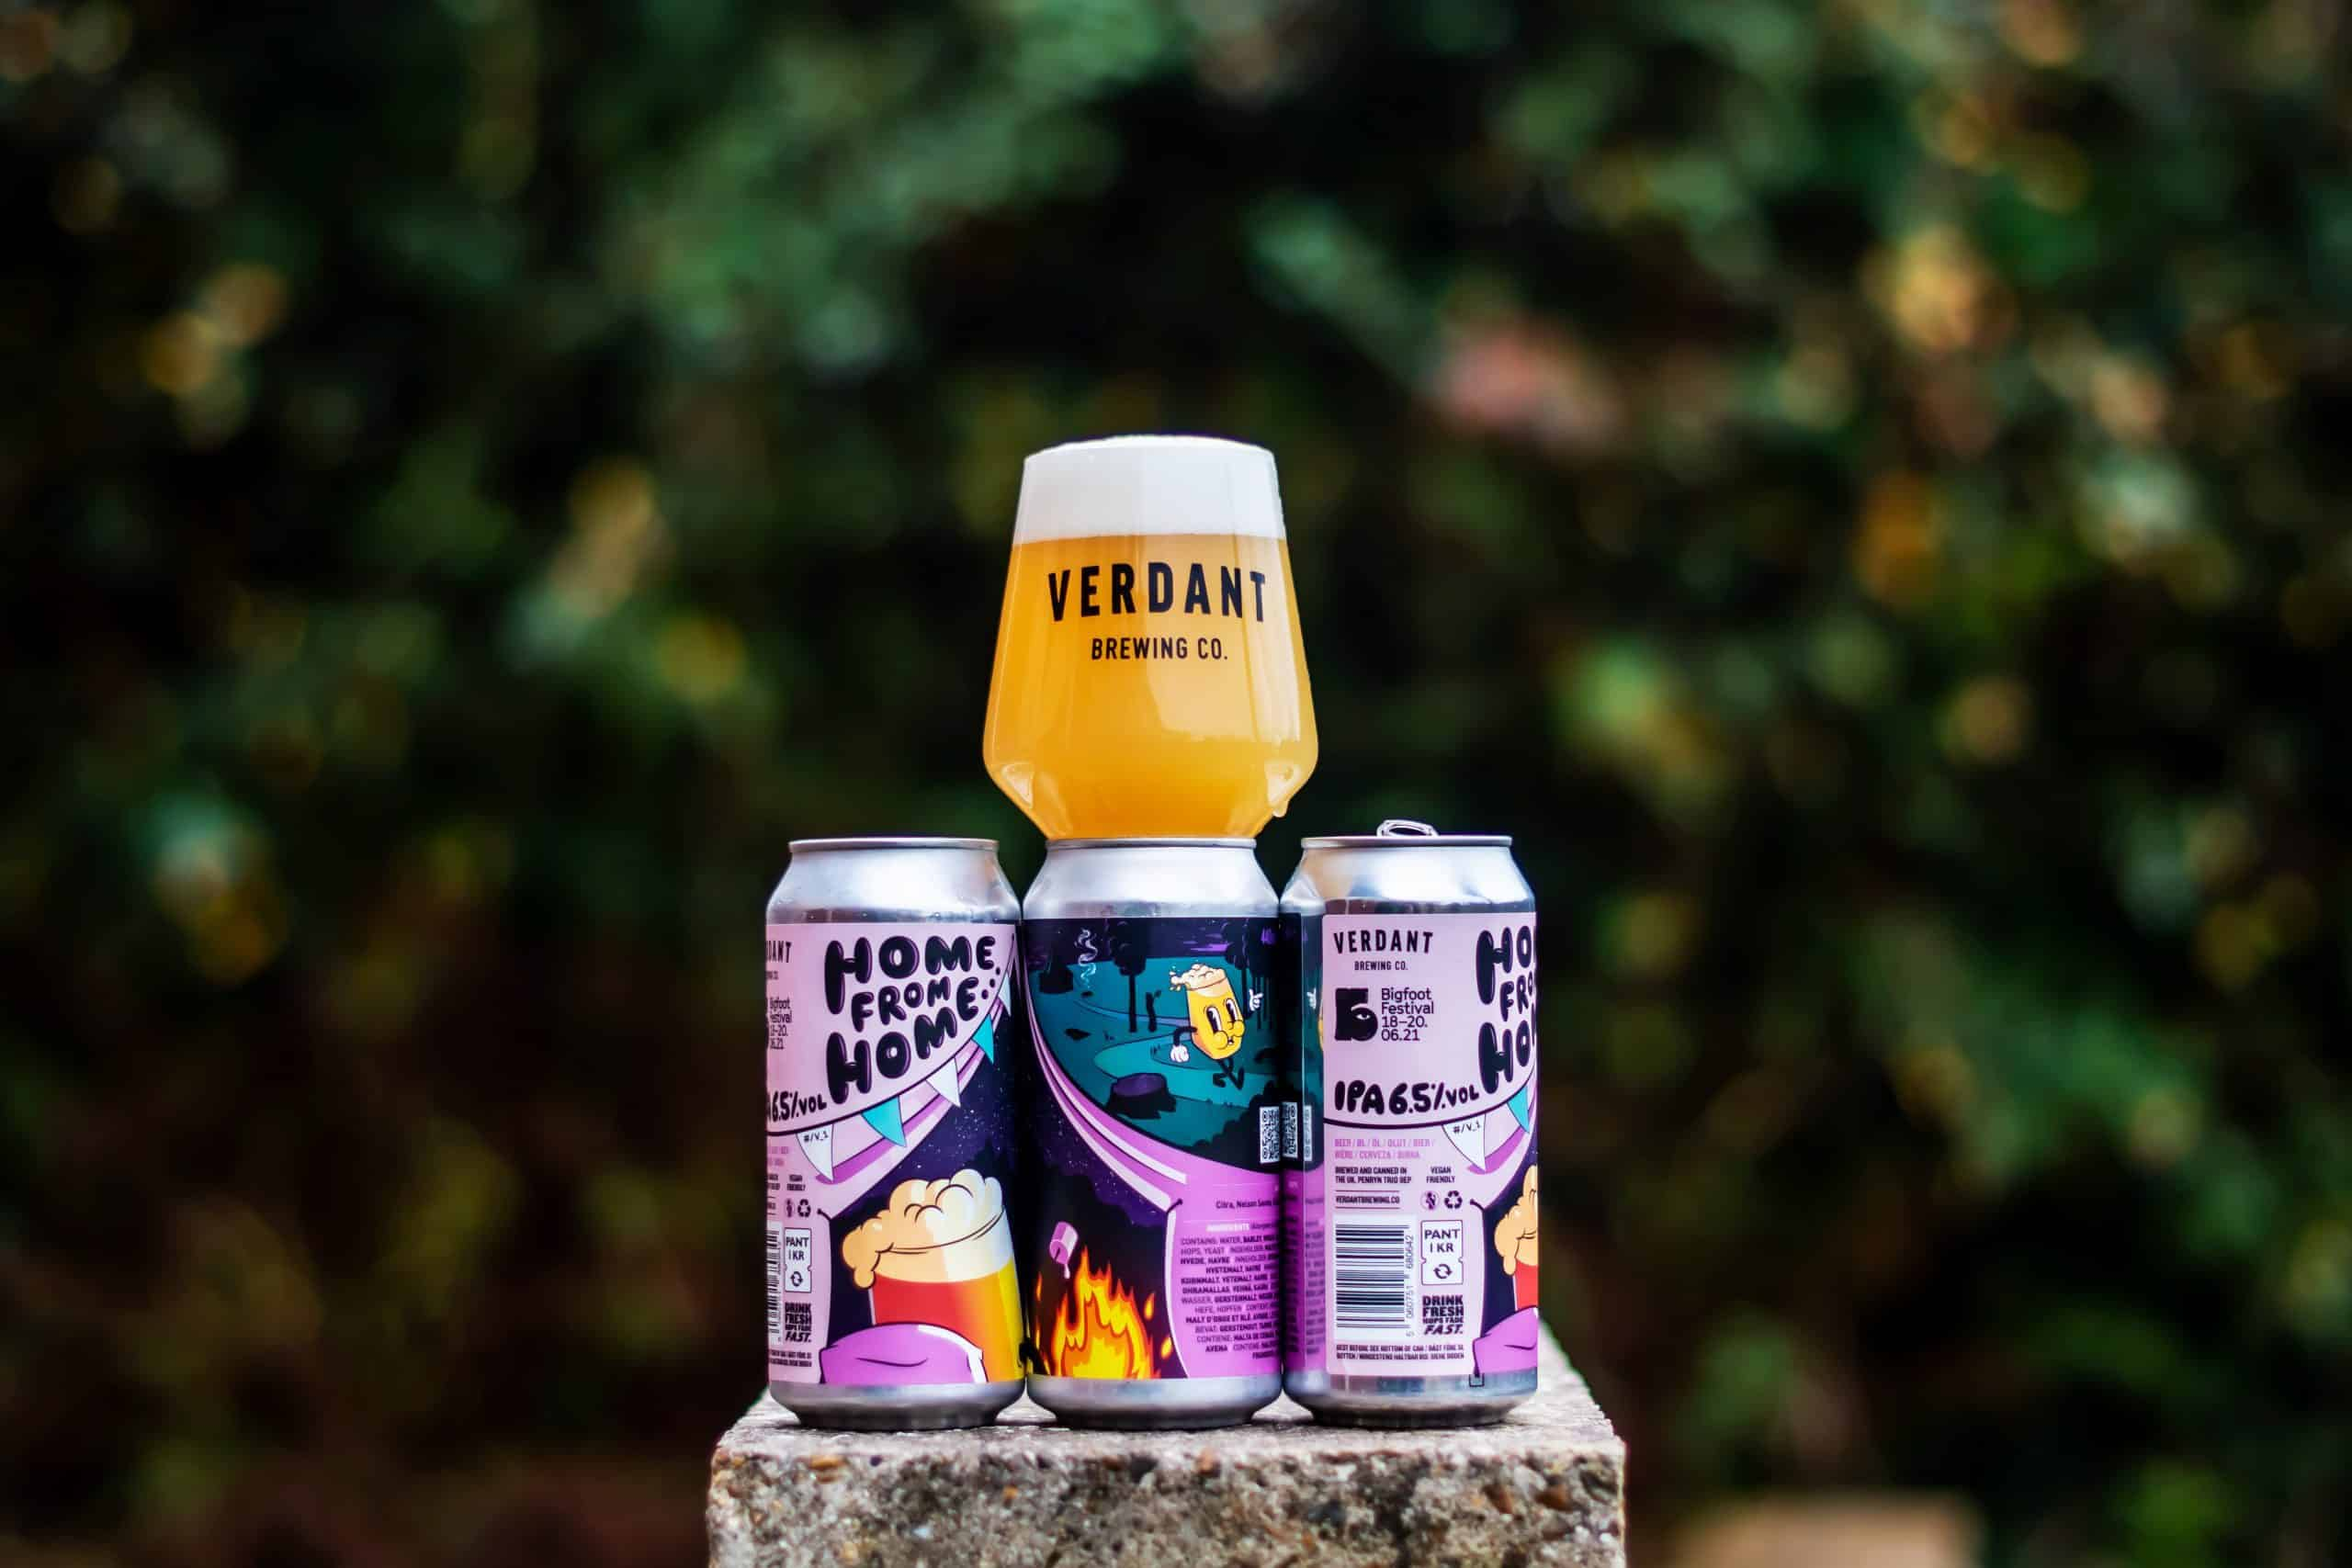 Verdant Brewing Co. Home From Home Ipa photo